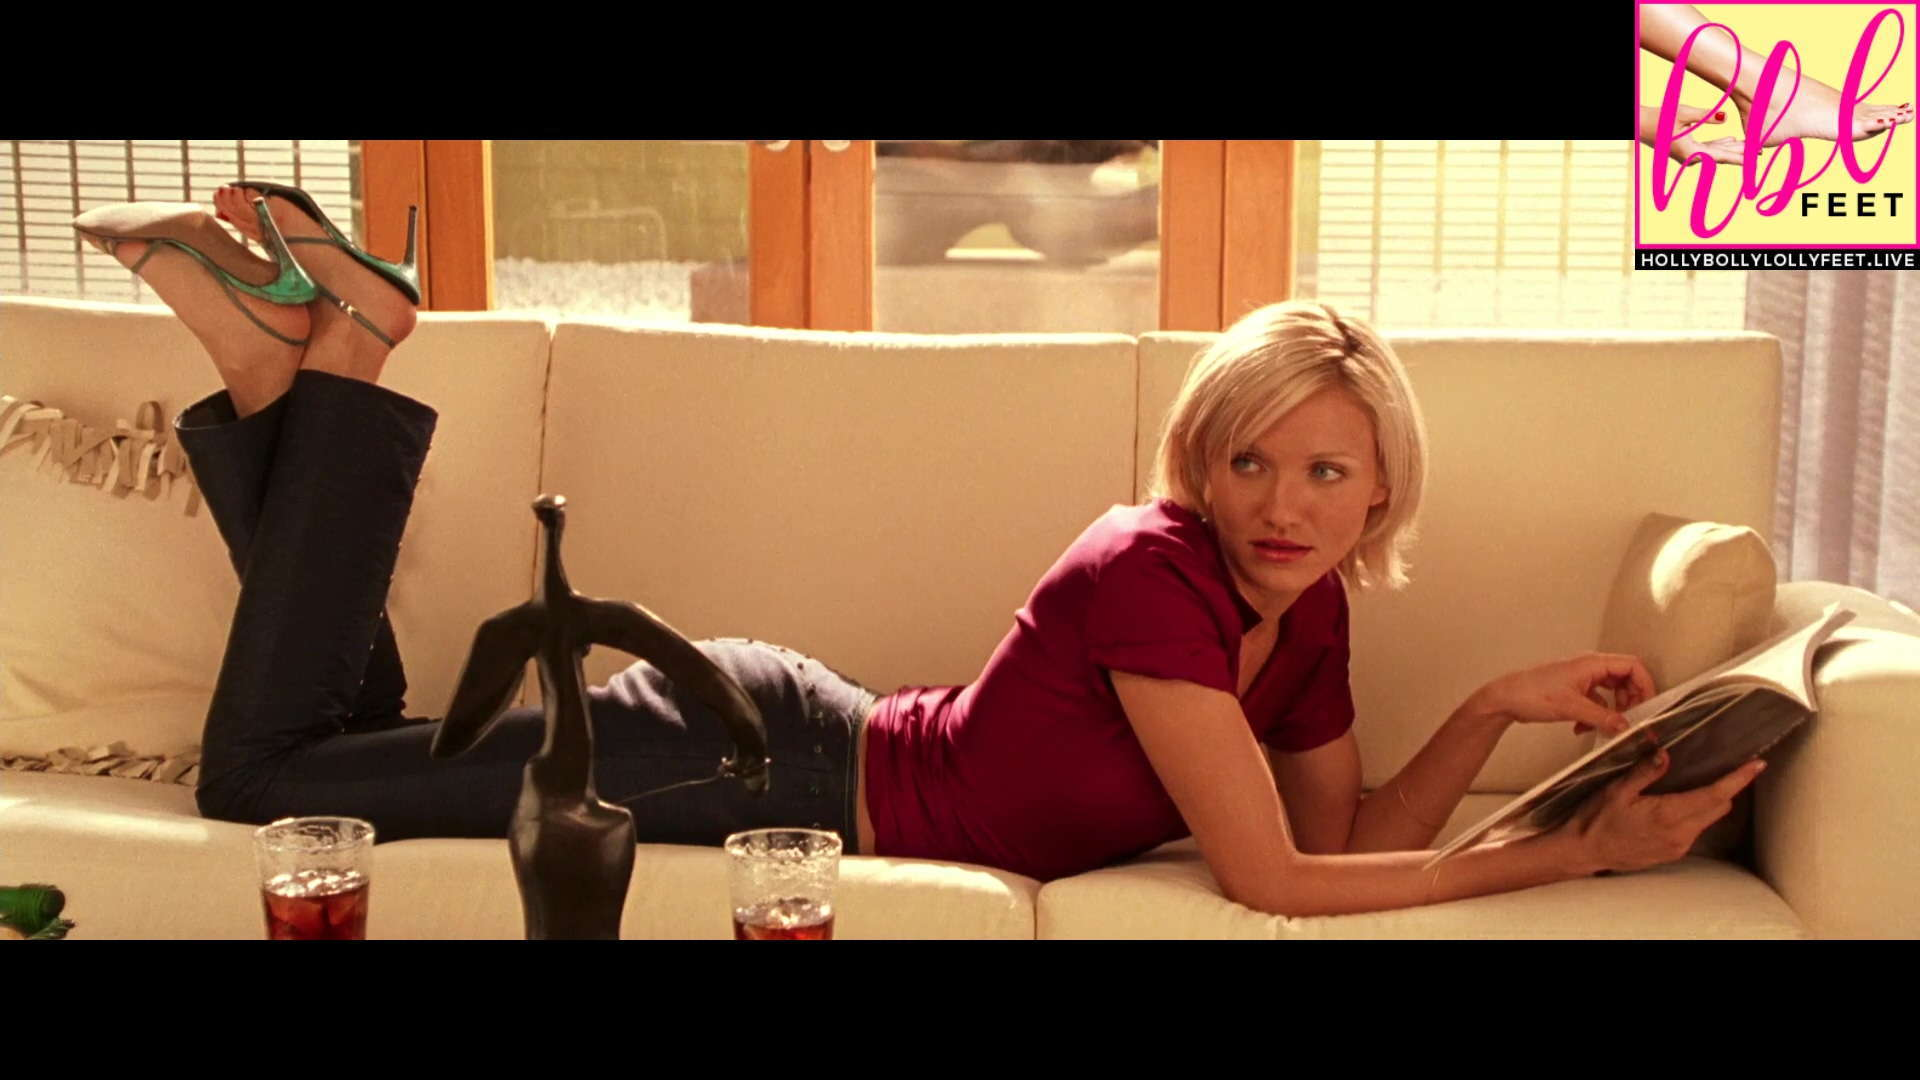 Cameron Diaz resting on couch